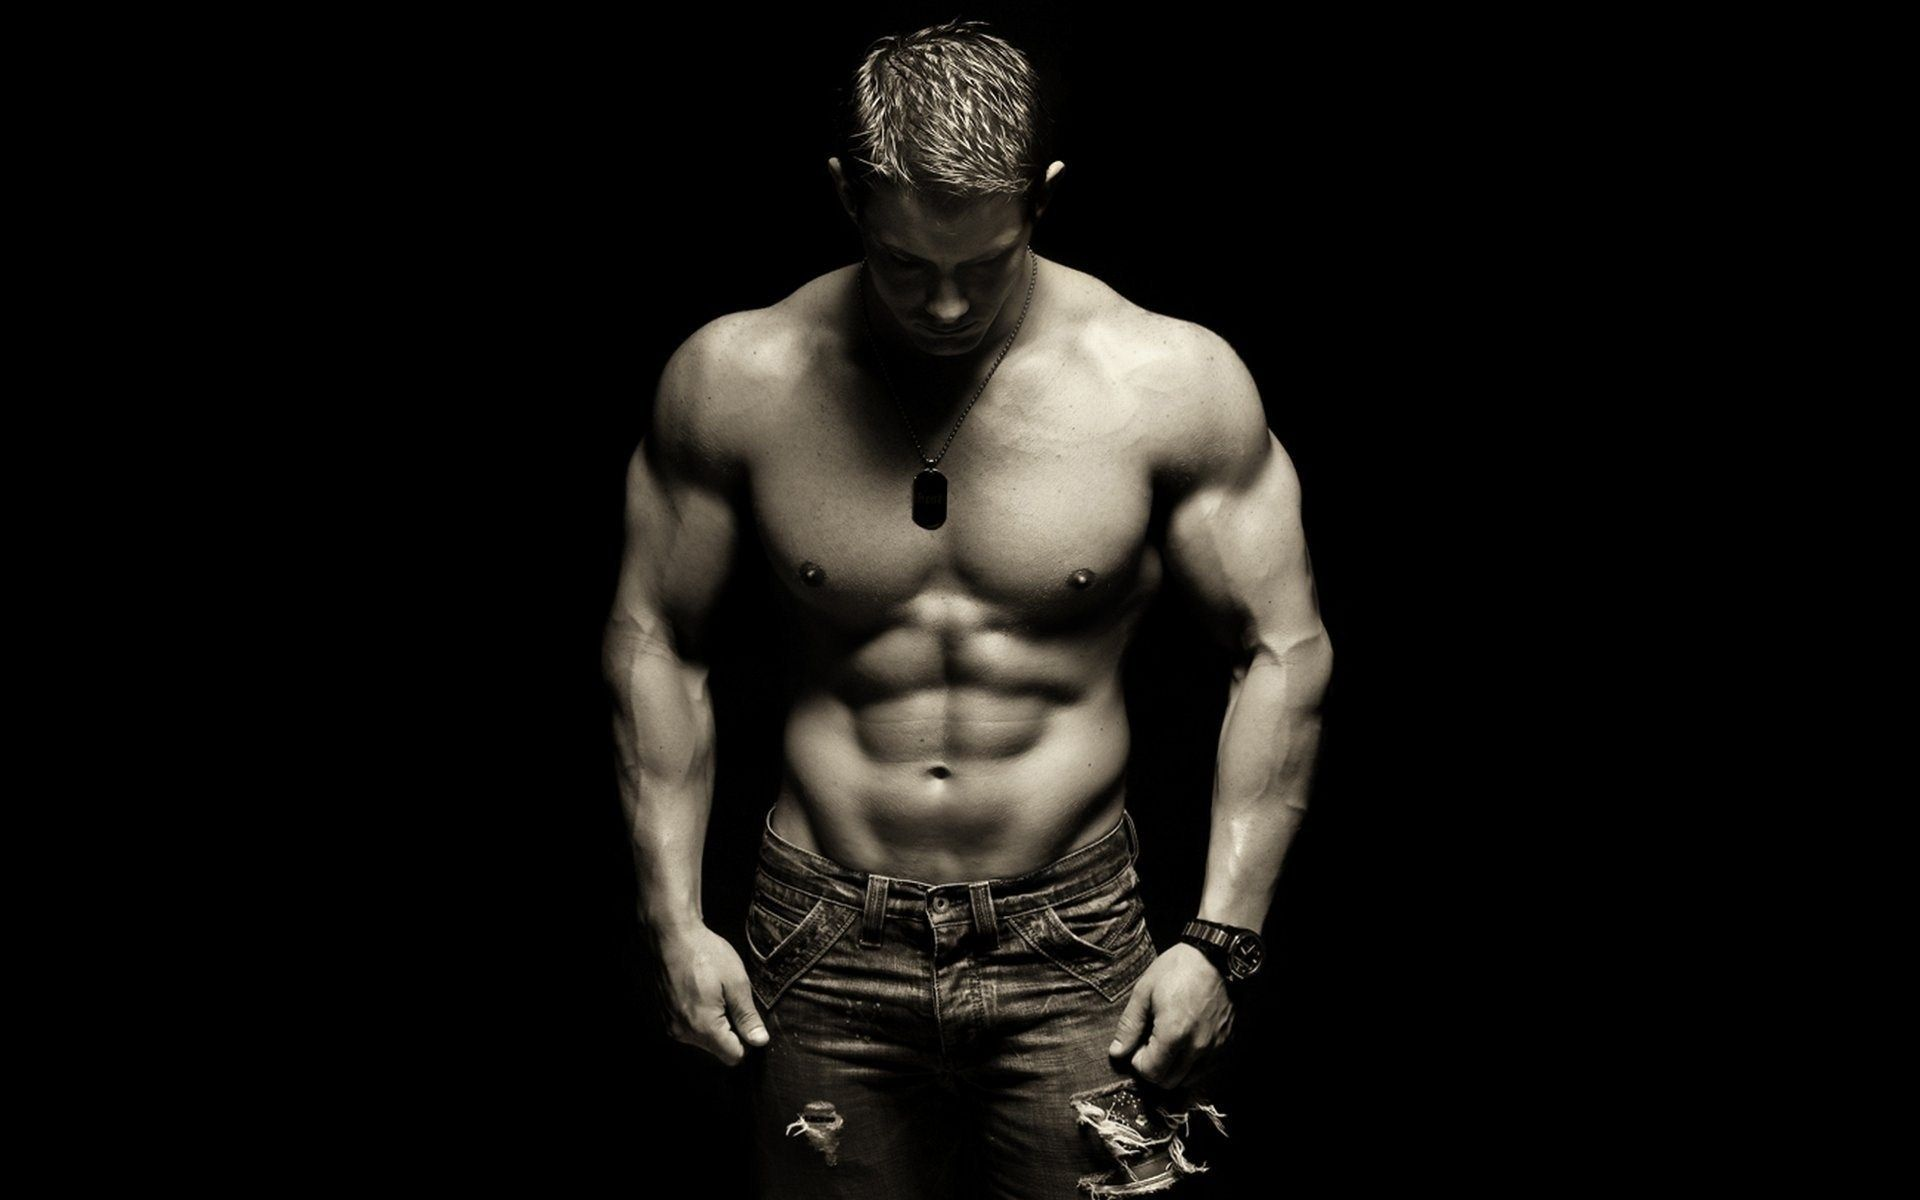 Pin On Muscle Weight Gain Gym images hd wallpaper download